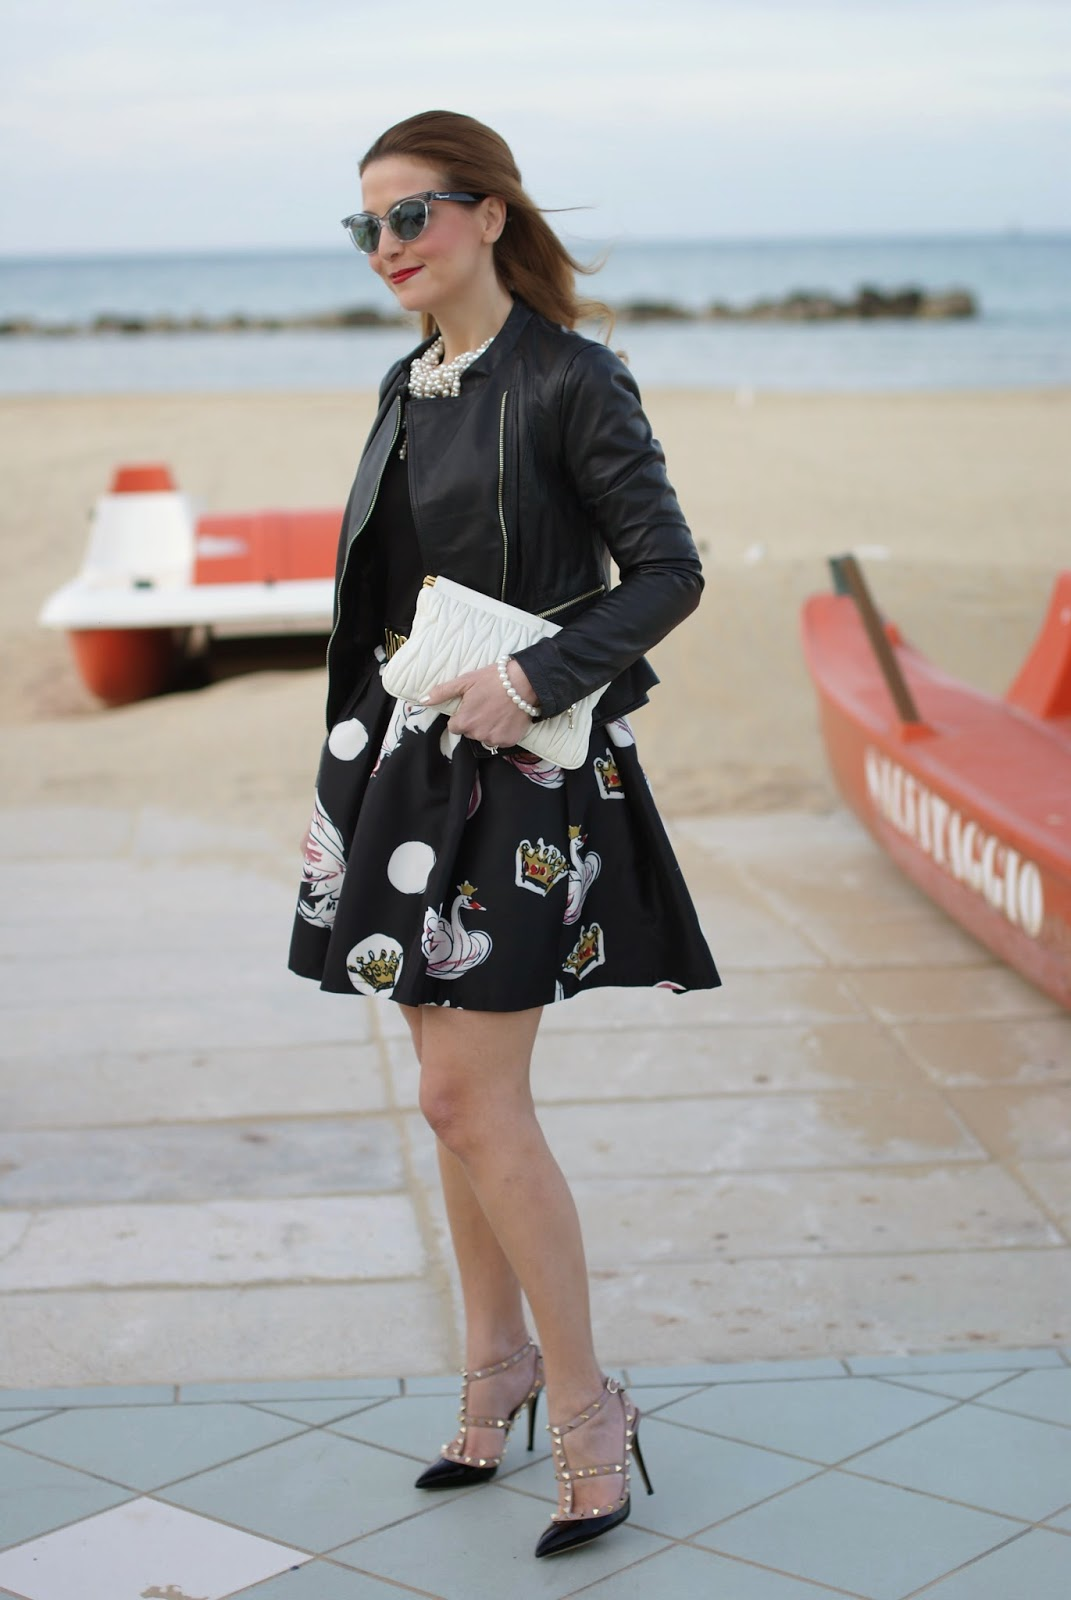 Valentino black pumps, Zaful polka dots dress, Miu Miu clutch, Fashion and Cookies fashion blog, fashion blogger style